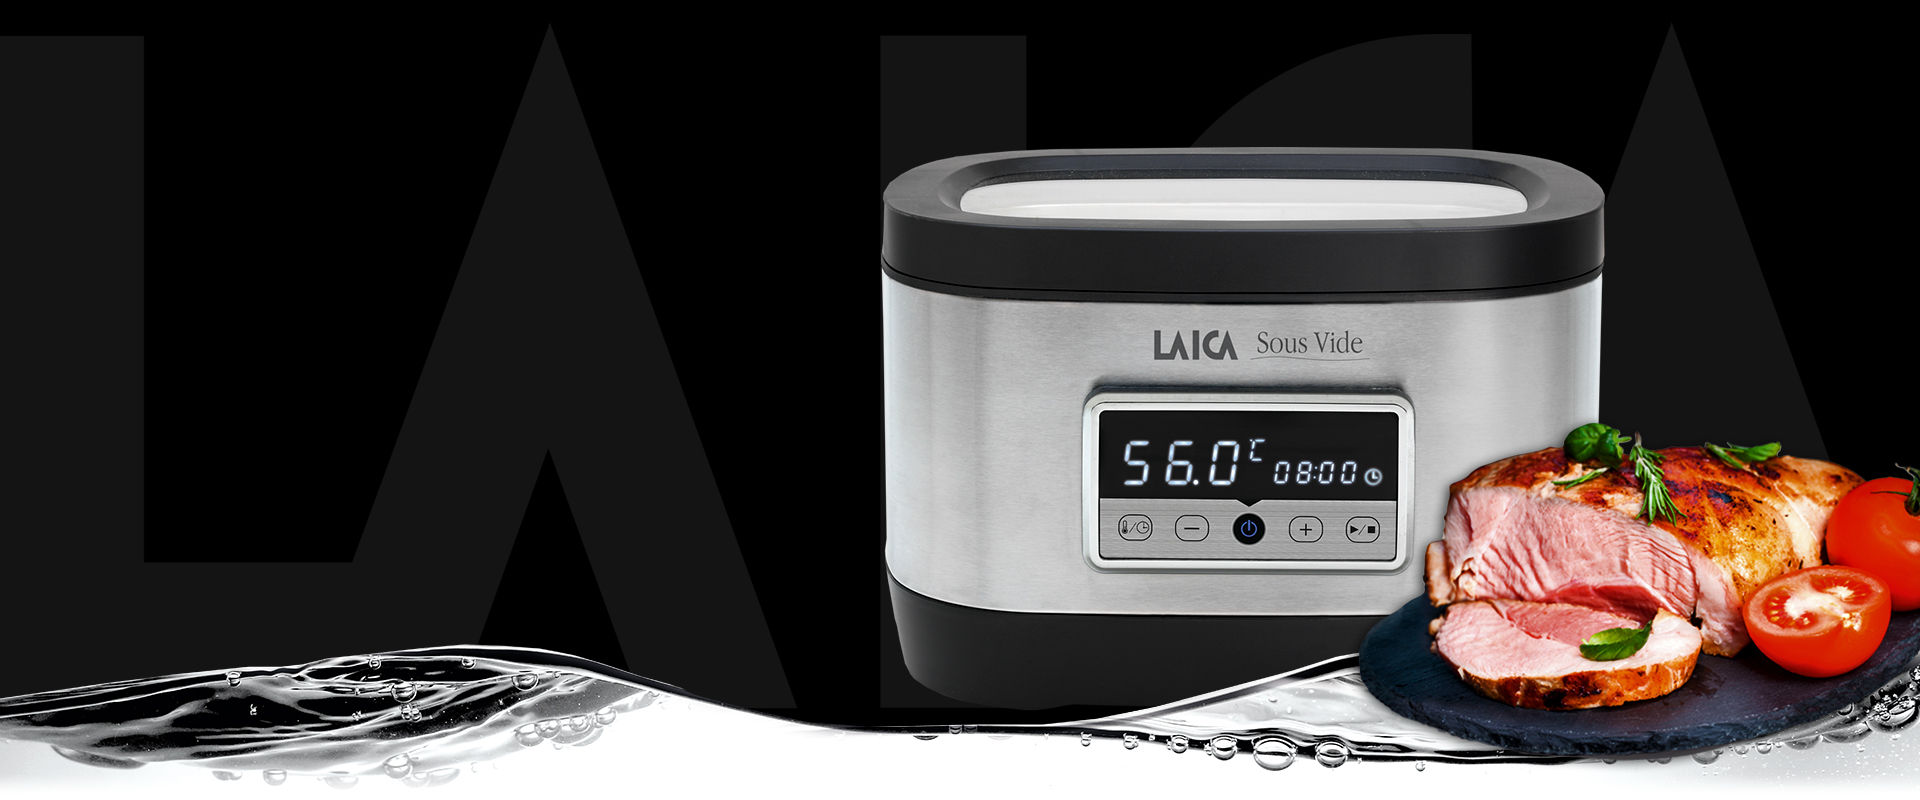 Sous vide cooking LAICA